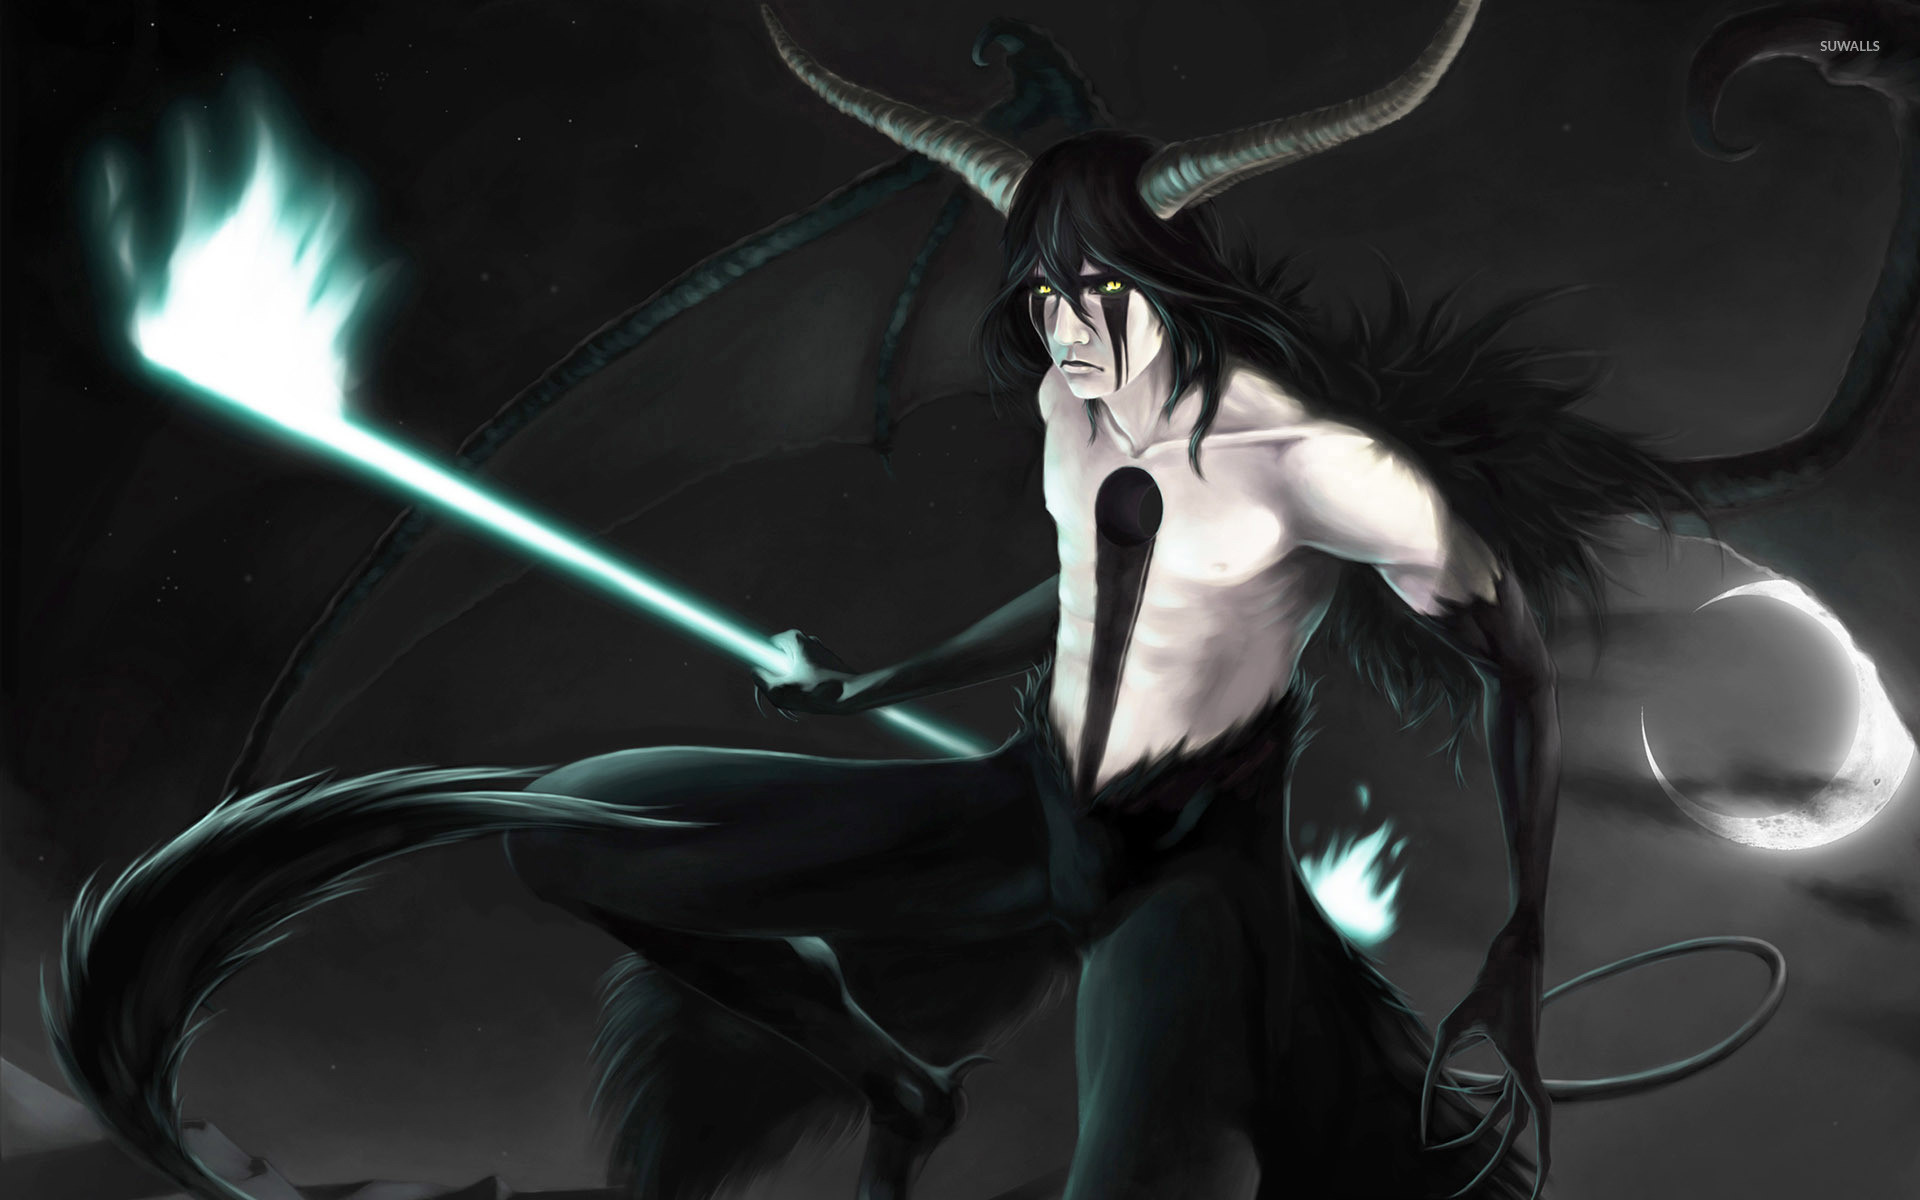 Res: 1920x1200, Ulquiorra Cifer from Bleach wallpaper